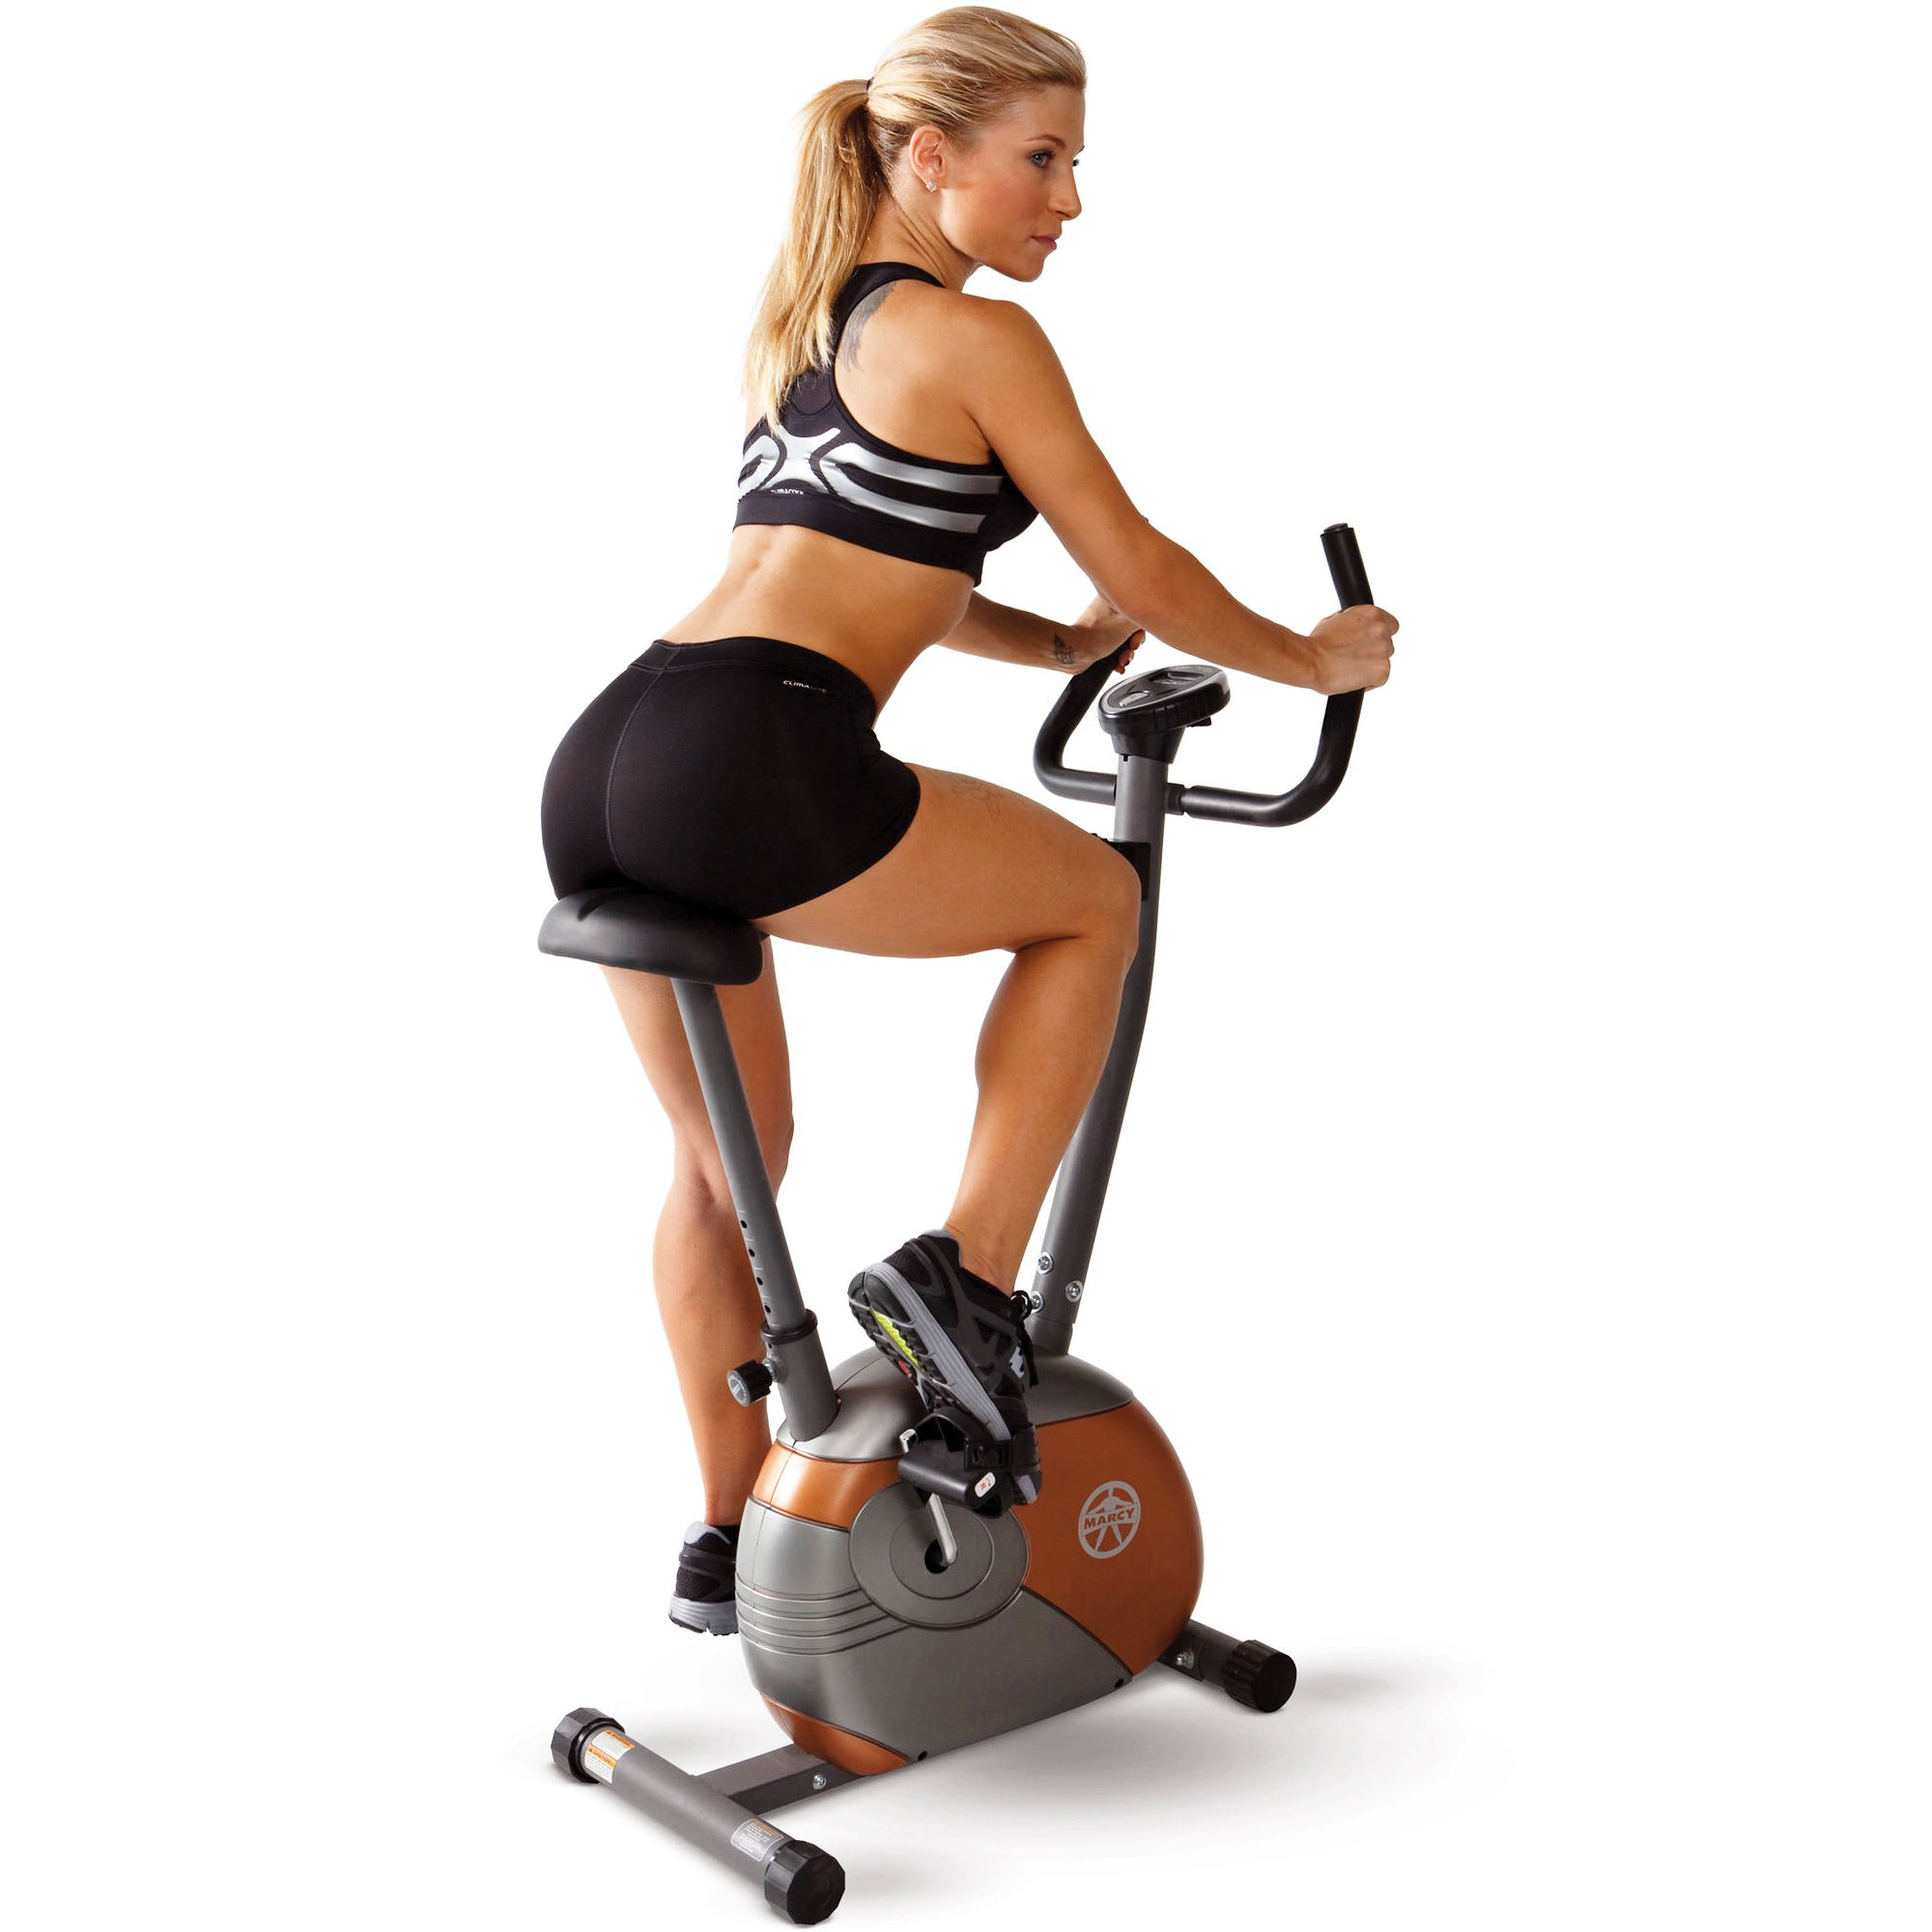 Marcy Upright Exercise Bike with Resistance ME-708 by Marcy (Image #2)